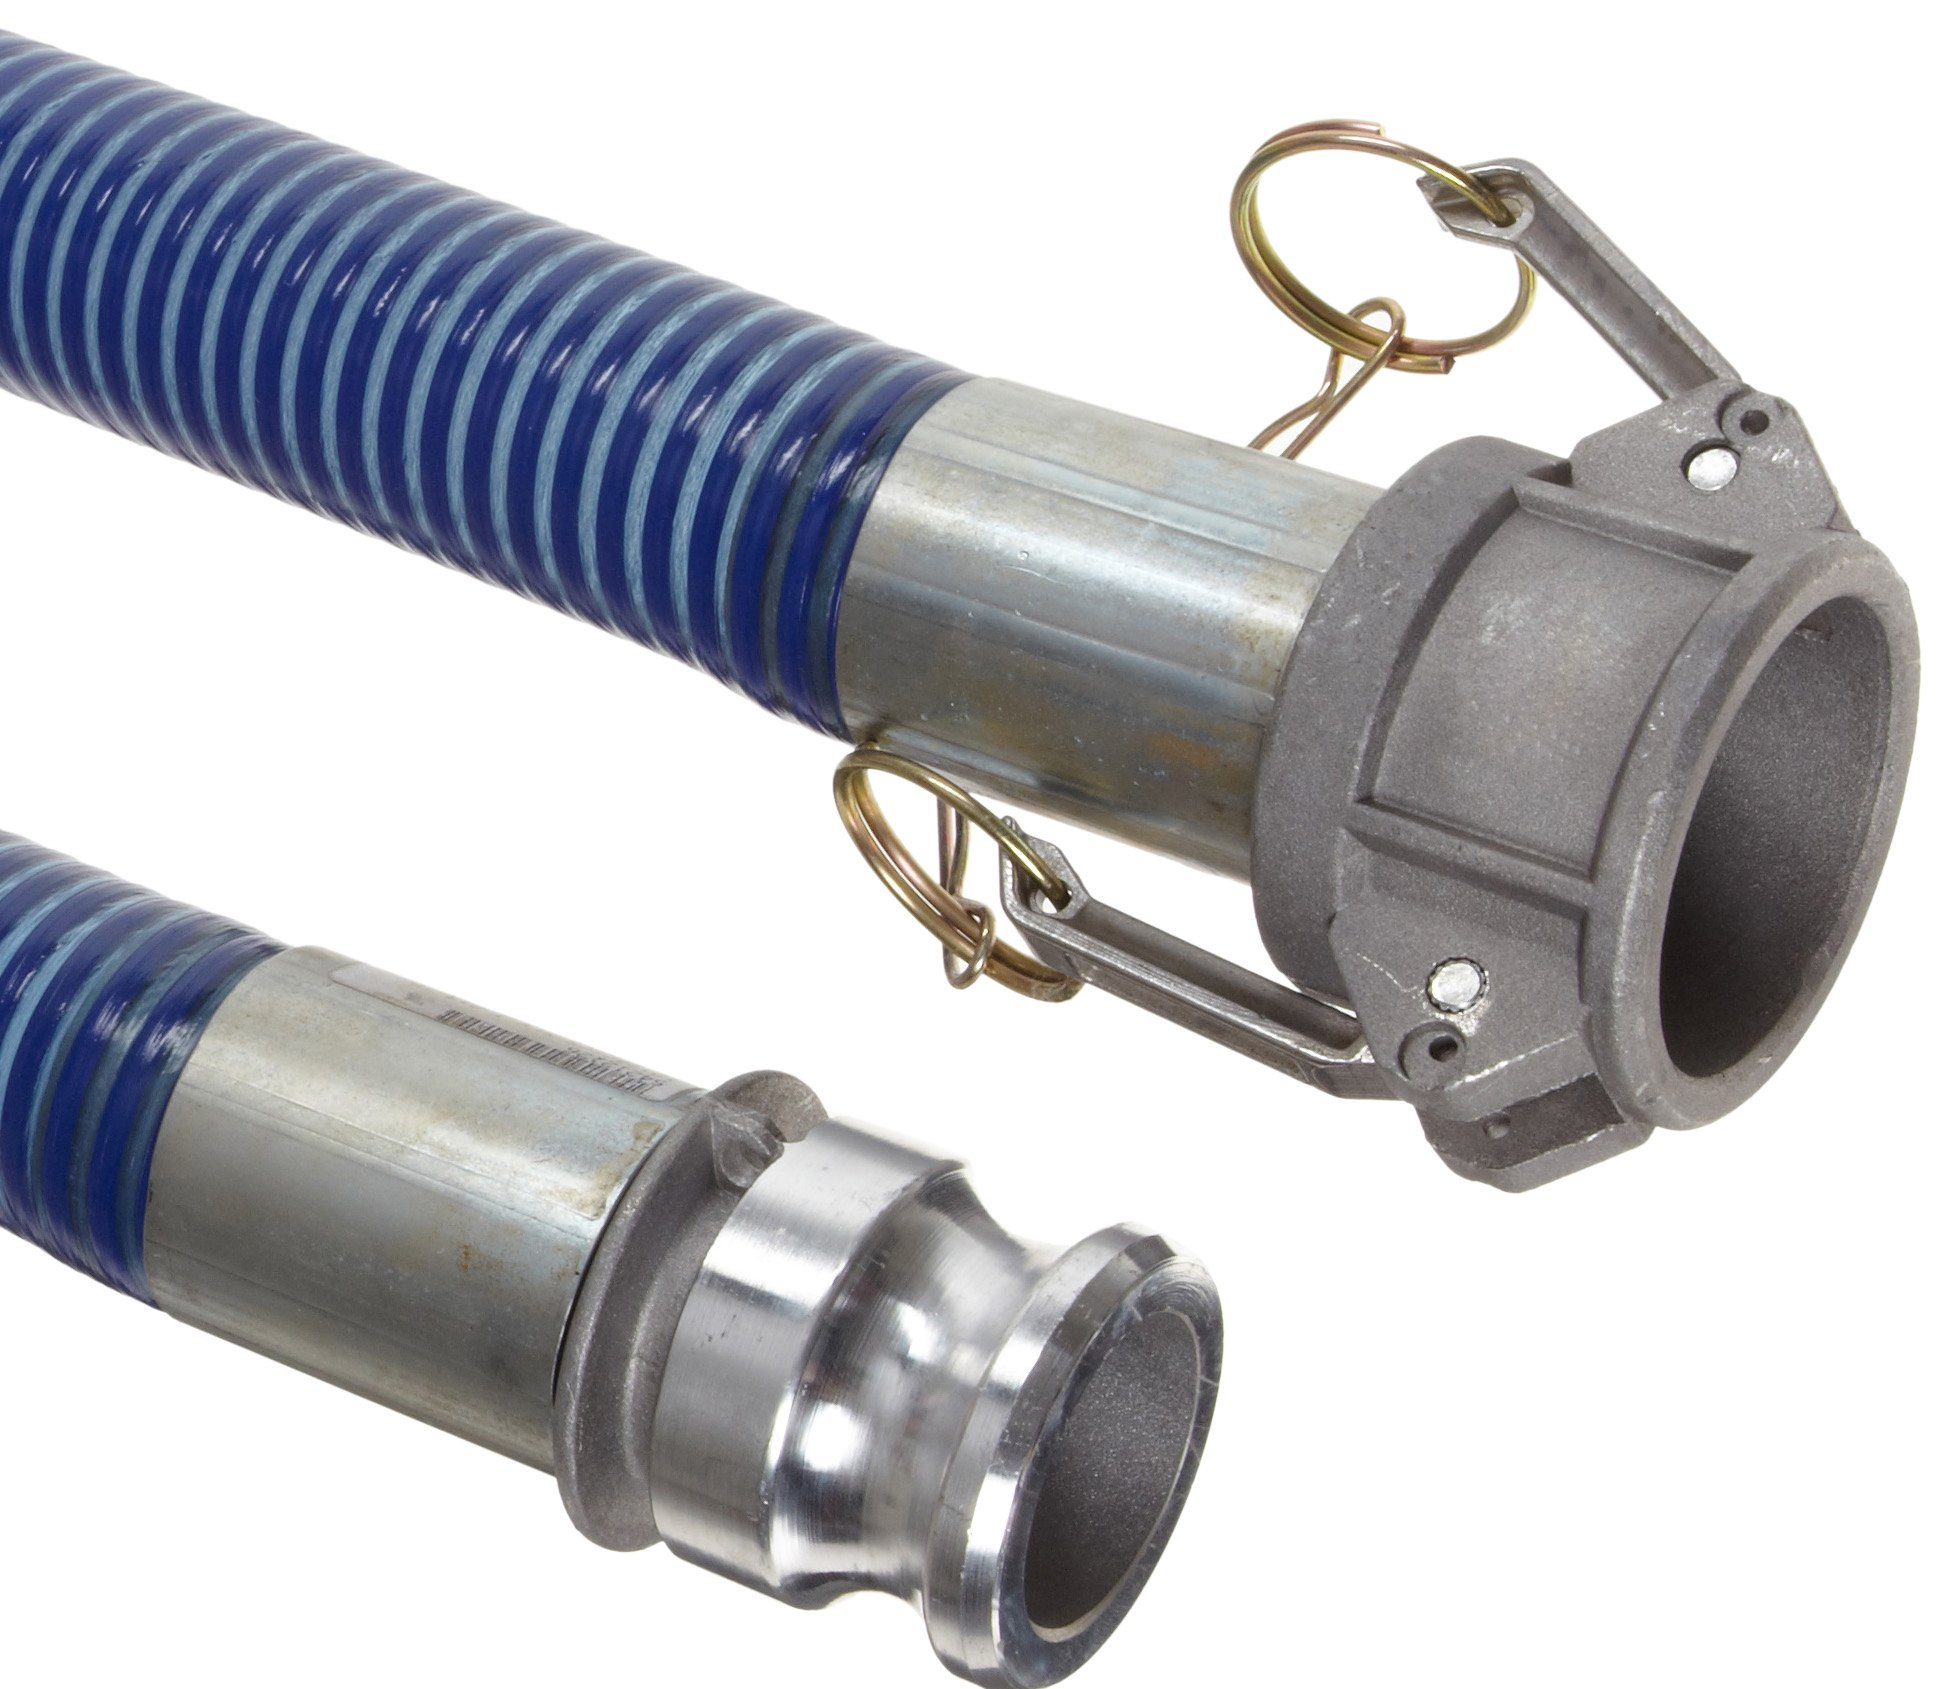 Goodyear EP Cold  Blue PVC Suction/Discharge Hose Assembly, 2'' Aluminum Cam And Groove Connection, 29mmHg Vacuum Rating 80 PSI Maximum Pressure, 20' Length, 2'' ID